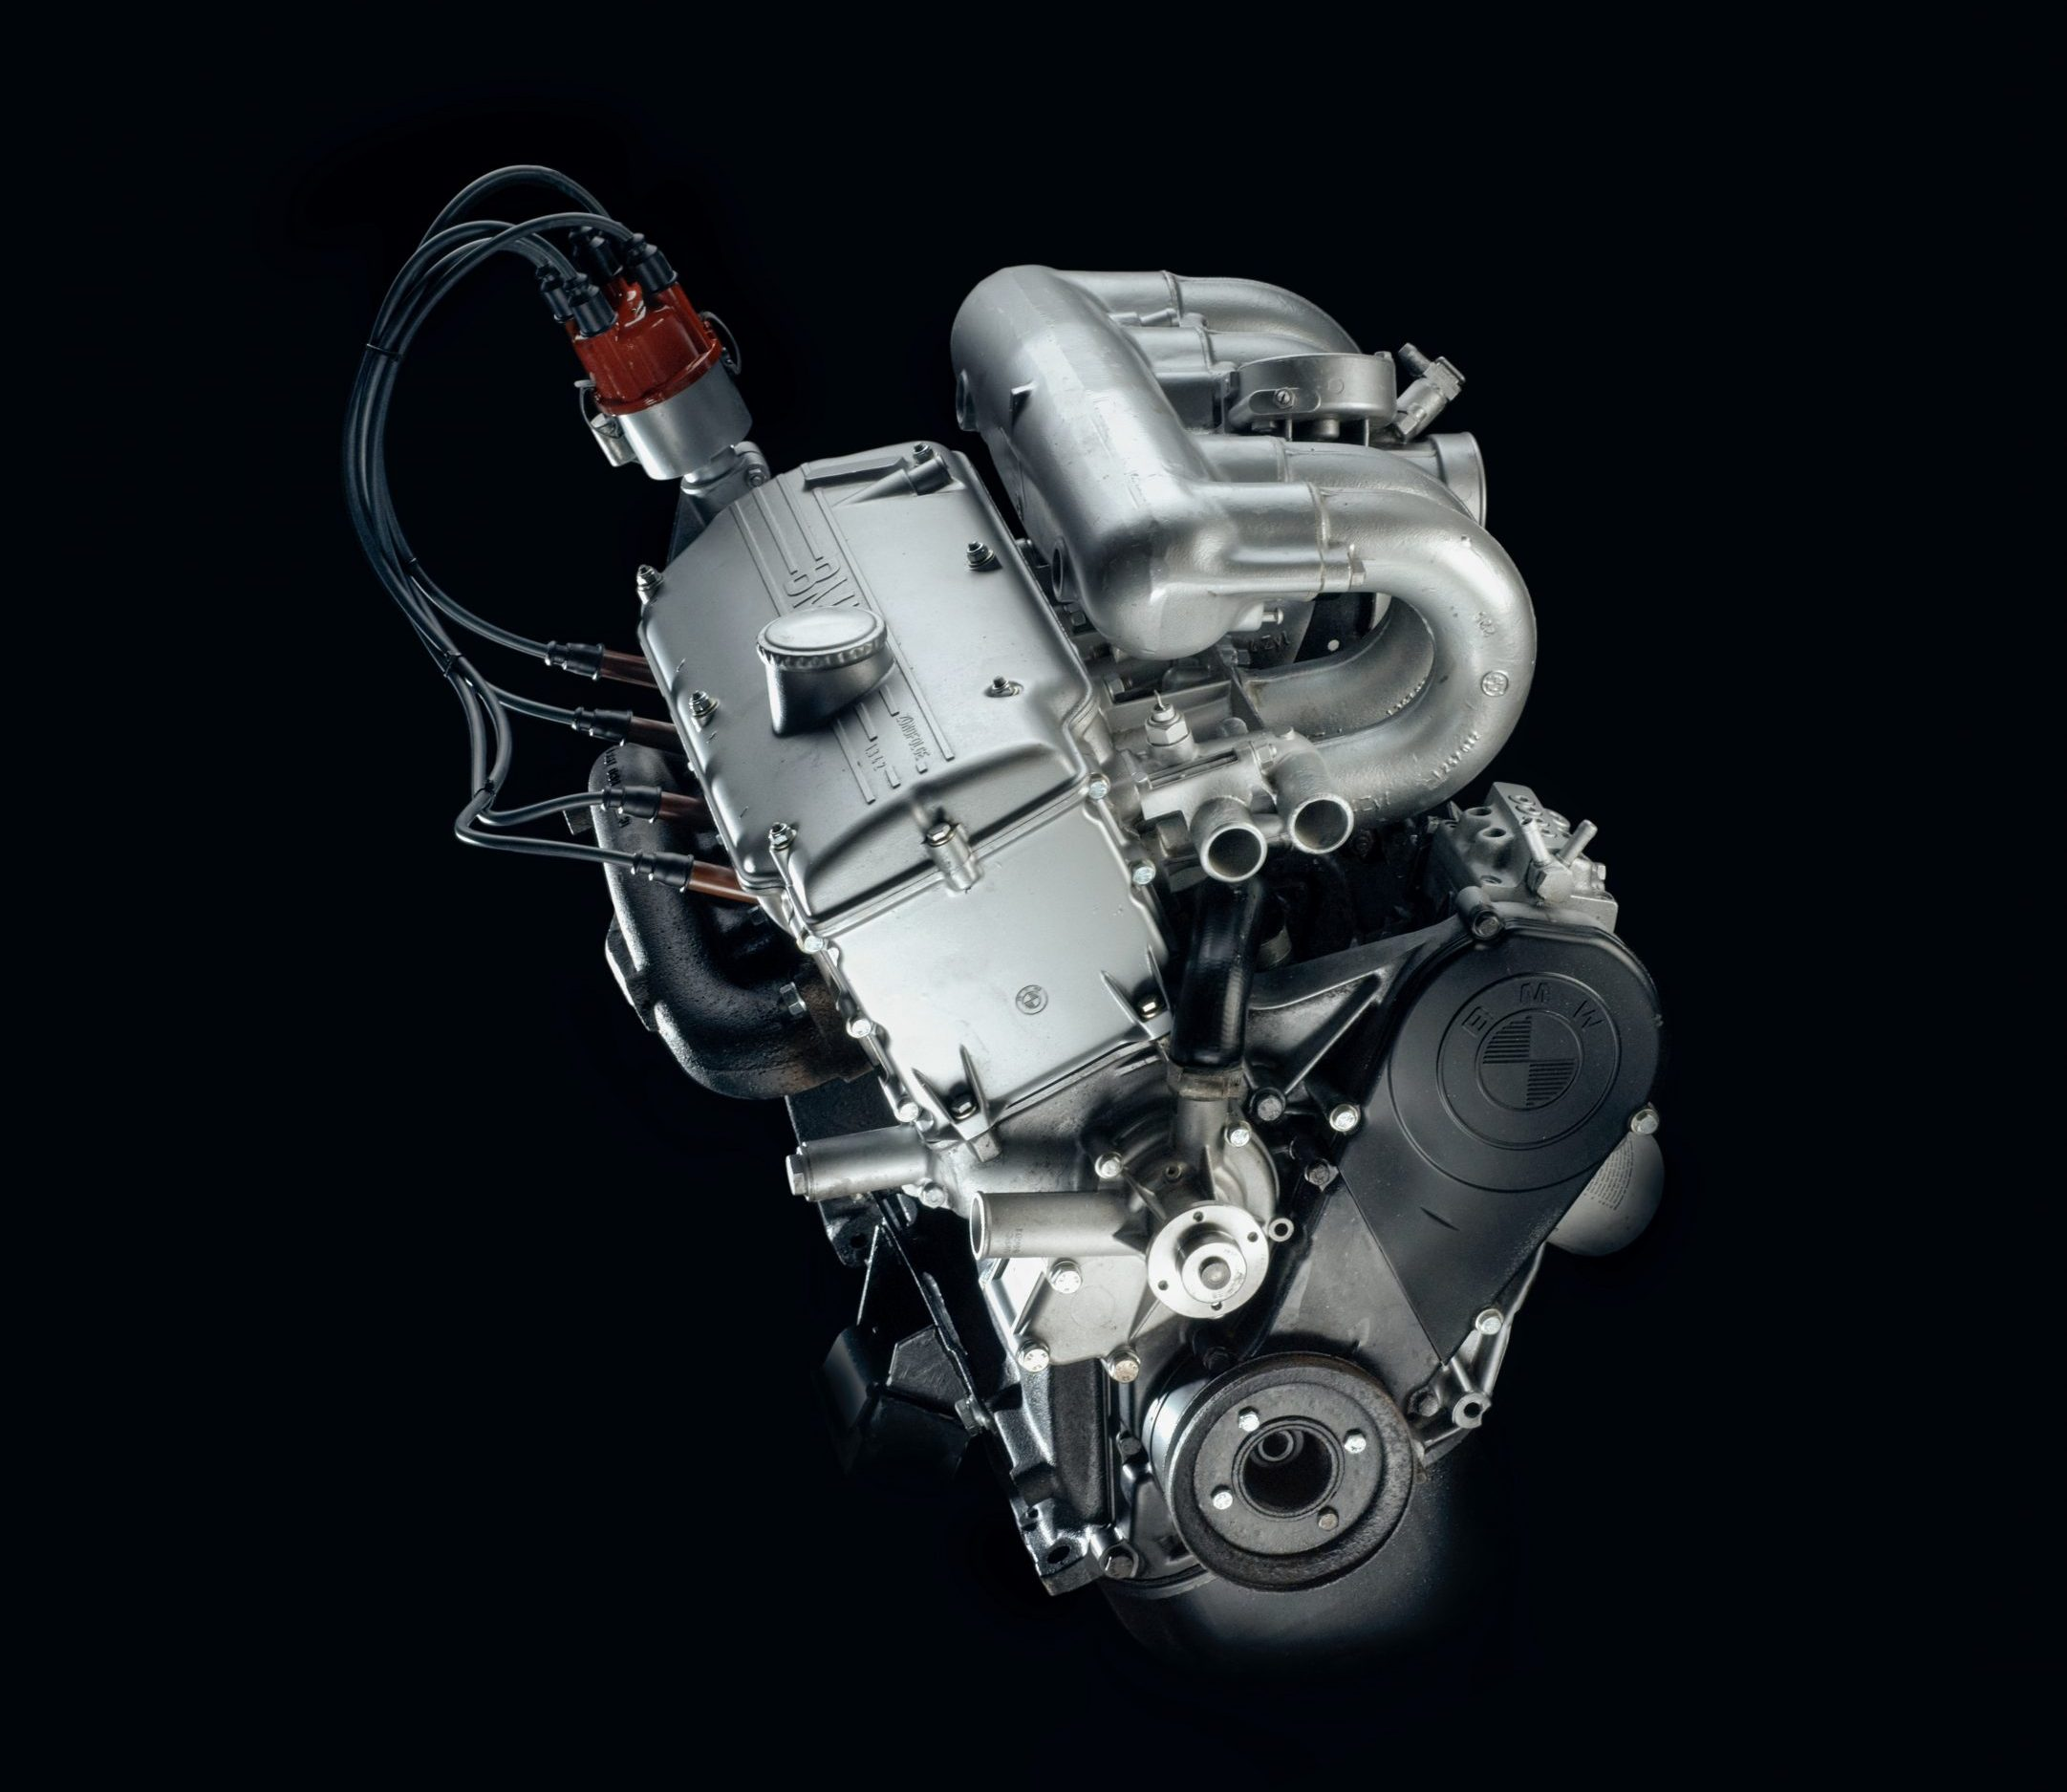 BMW's most significant engine didn't have six cylinders